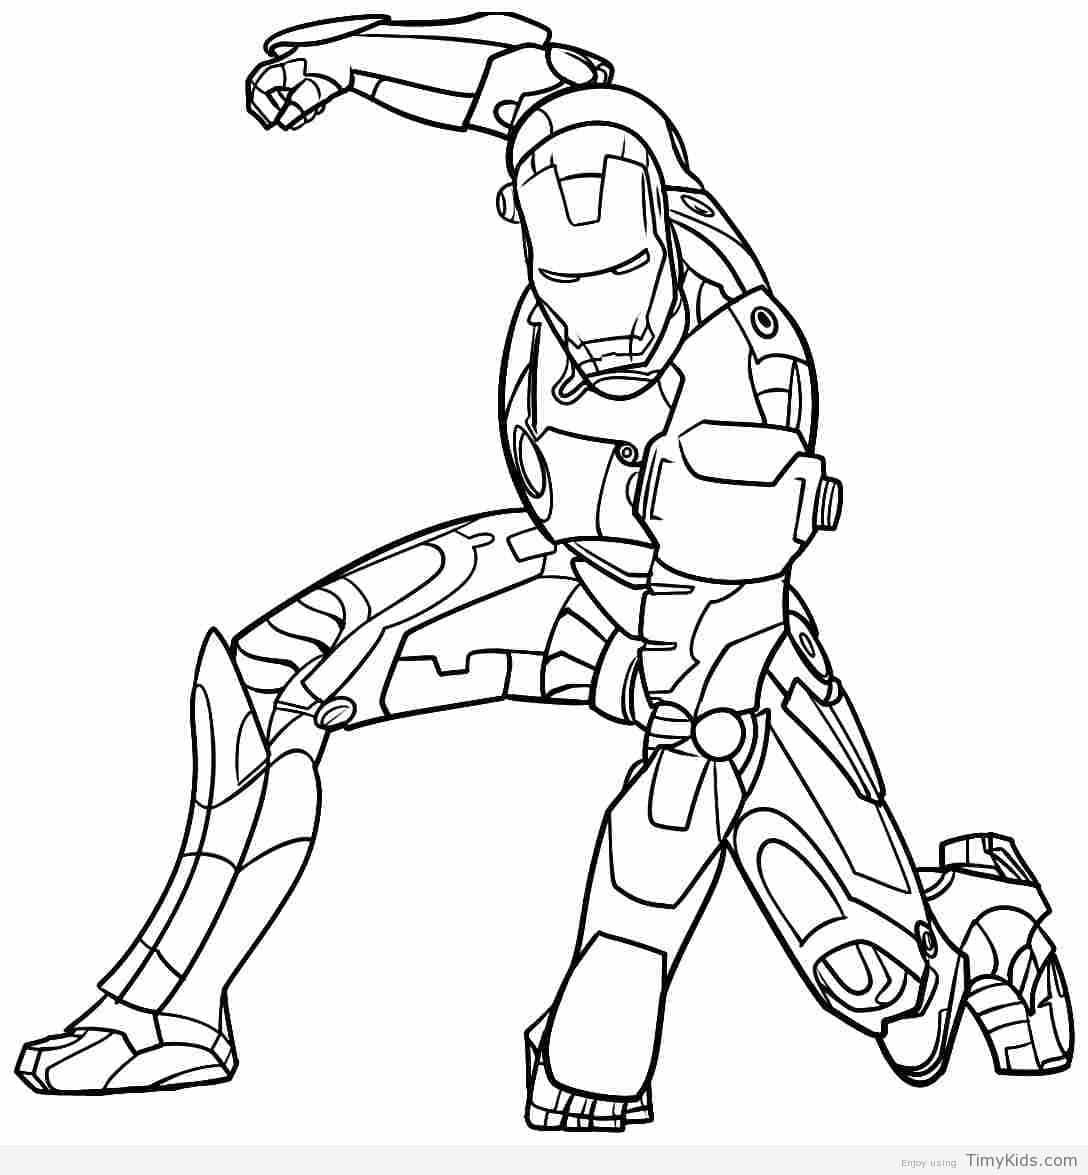 Ironman Coloring Pages Httptimykidsironmancoloringsheet.html  Colorings